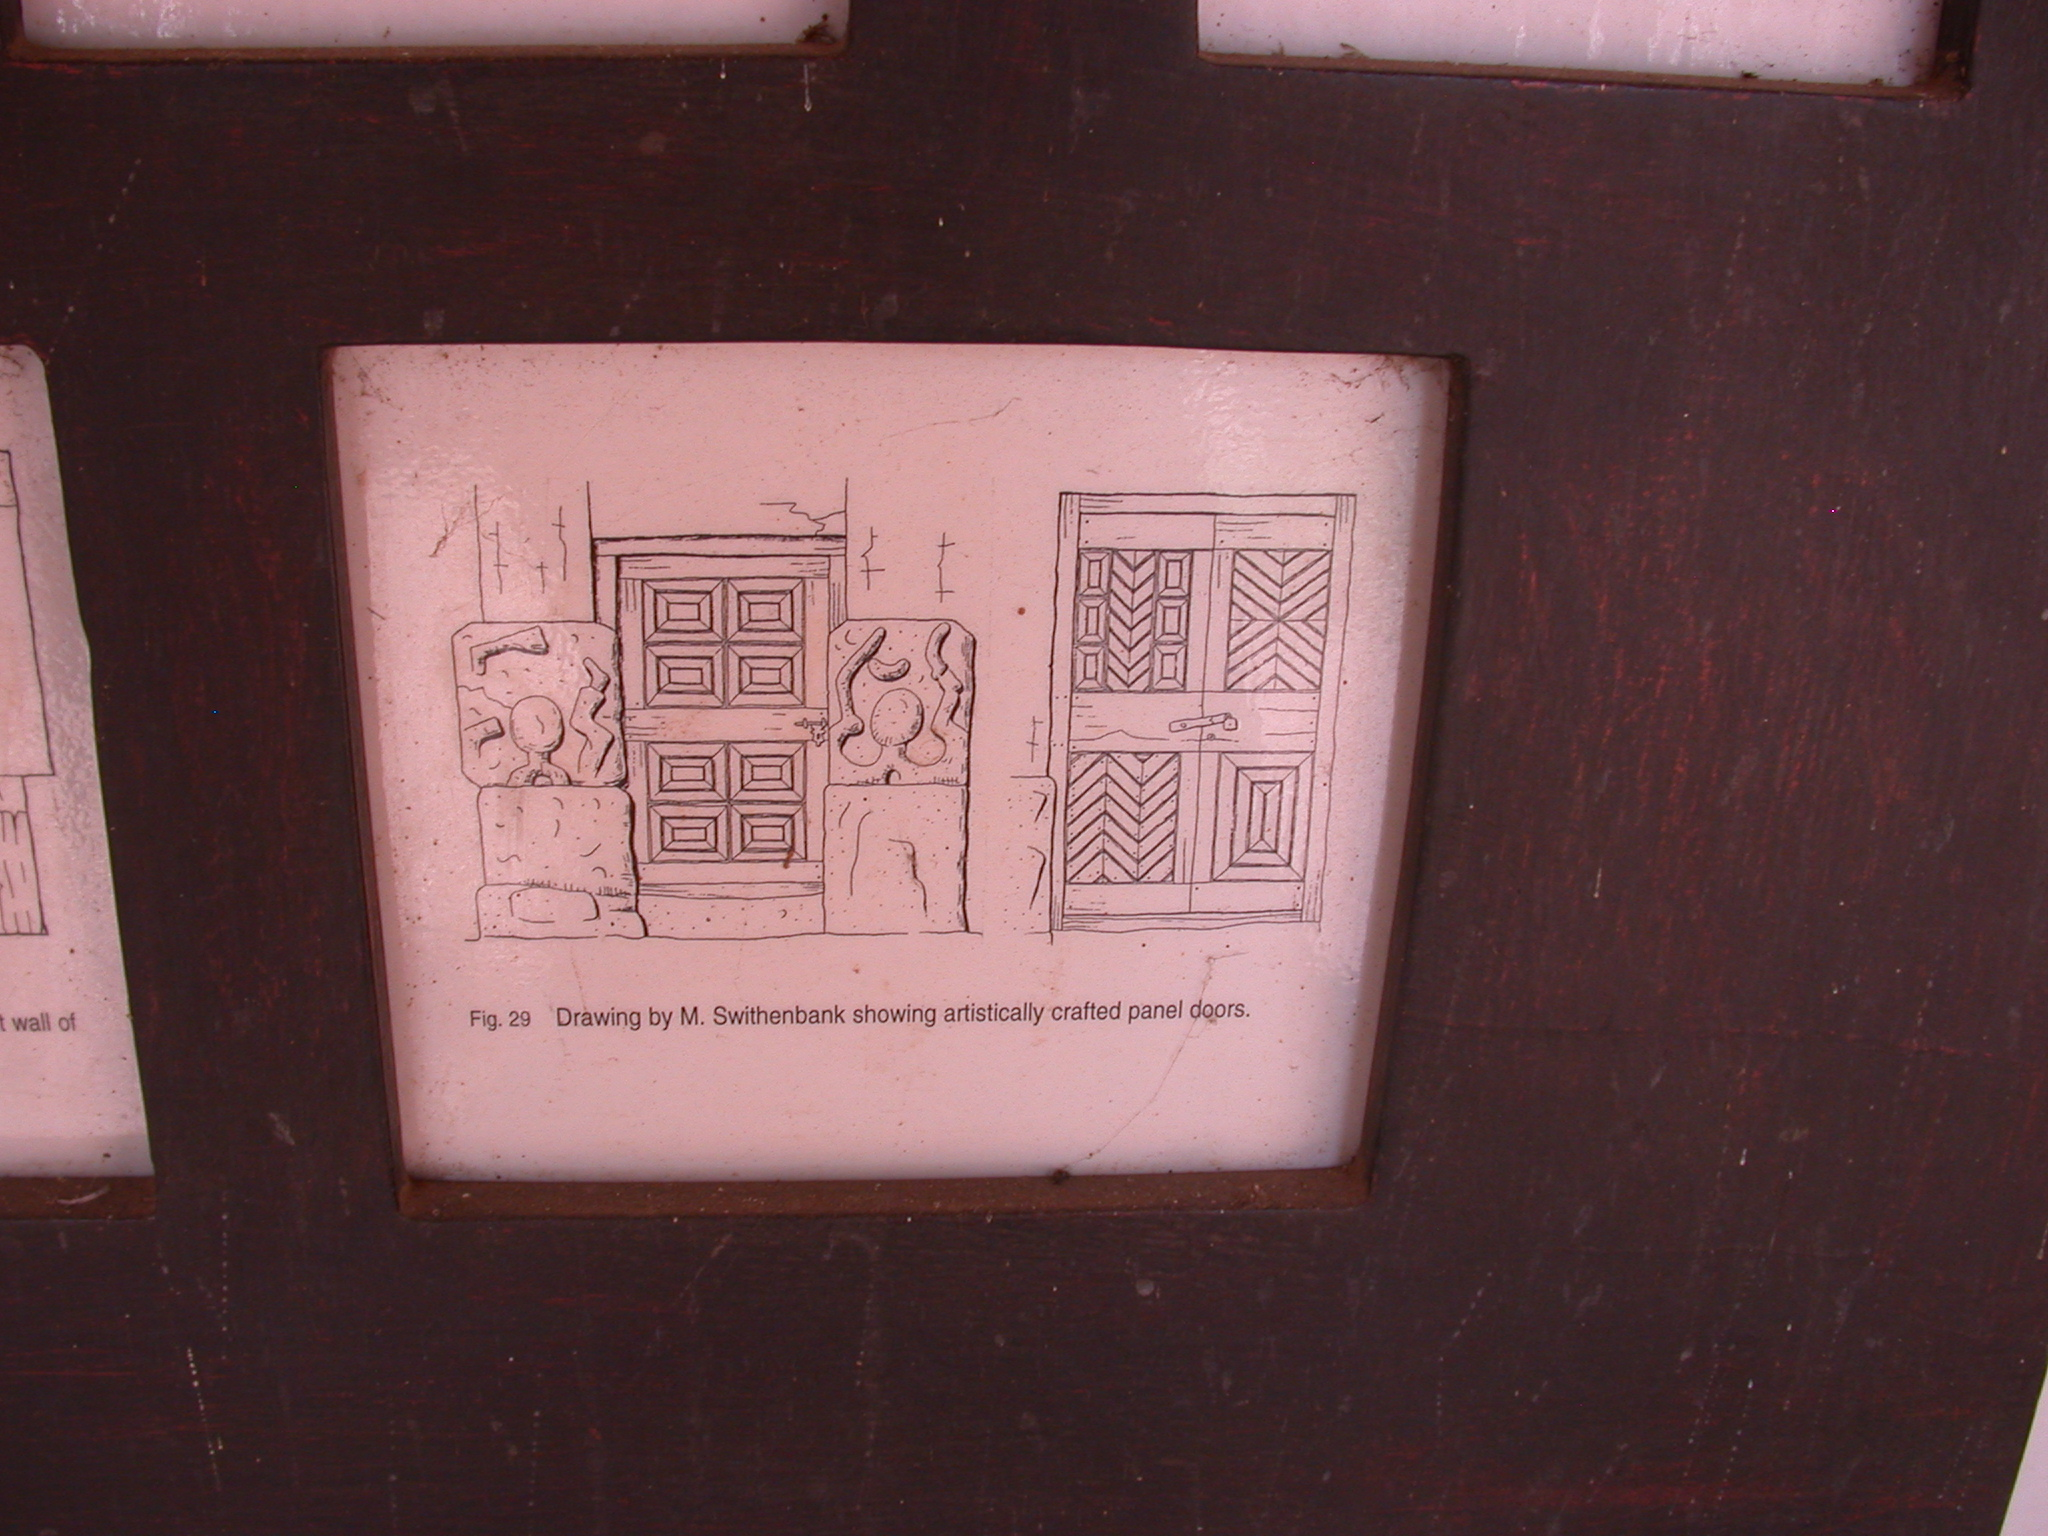 Drawing Showing Artistically Crafted Panel Doors, Asante Traditional Shrine at Ejisu-Besease, Ghana